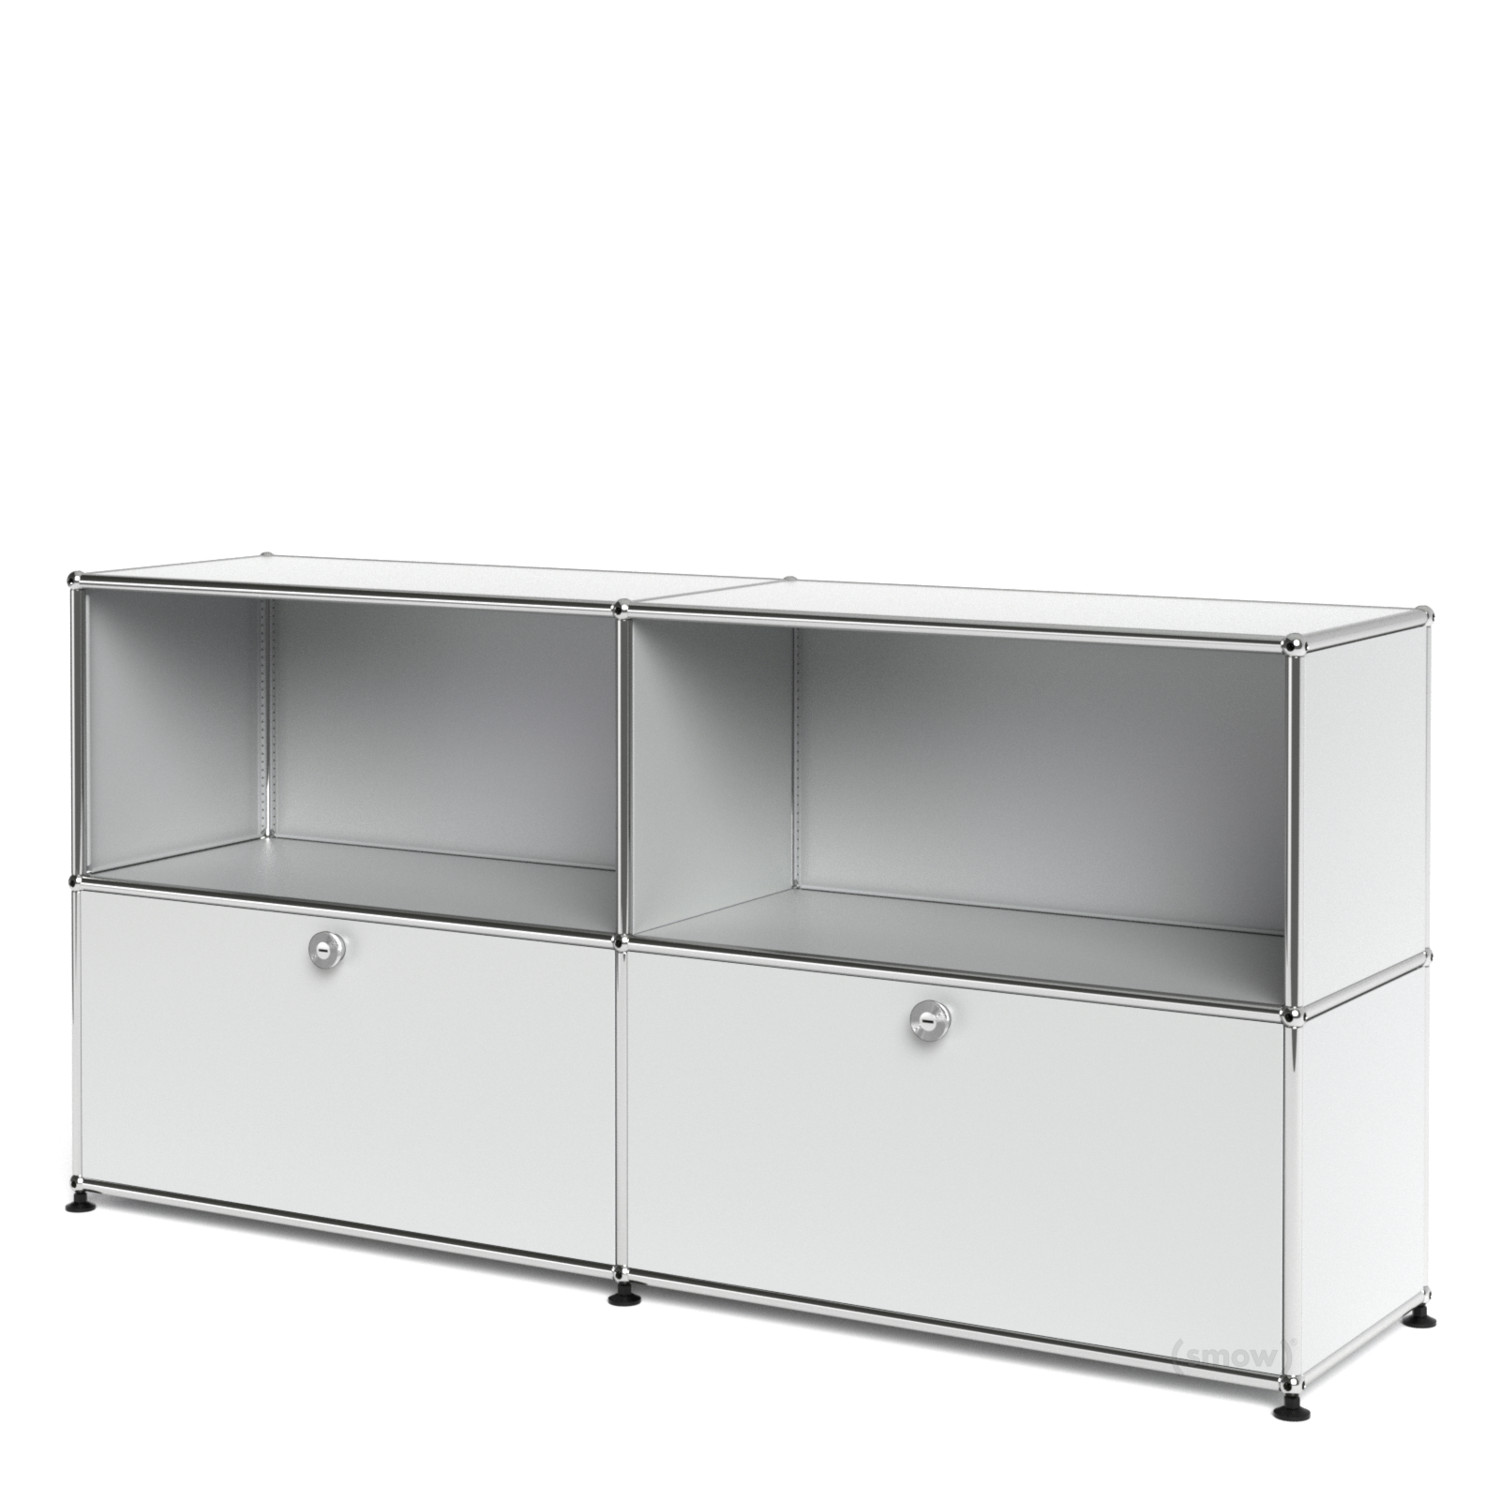 Usm haller sideboard l with 2 drop down doors usm matte for Usm haller sideboard weiay